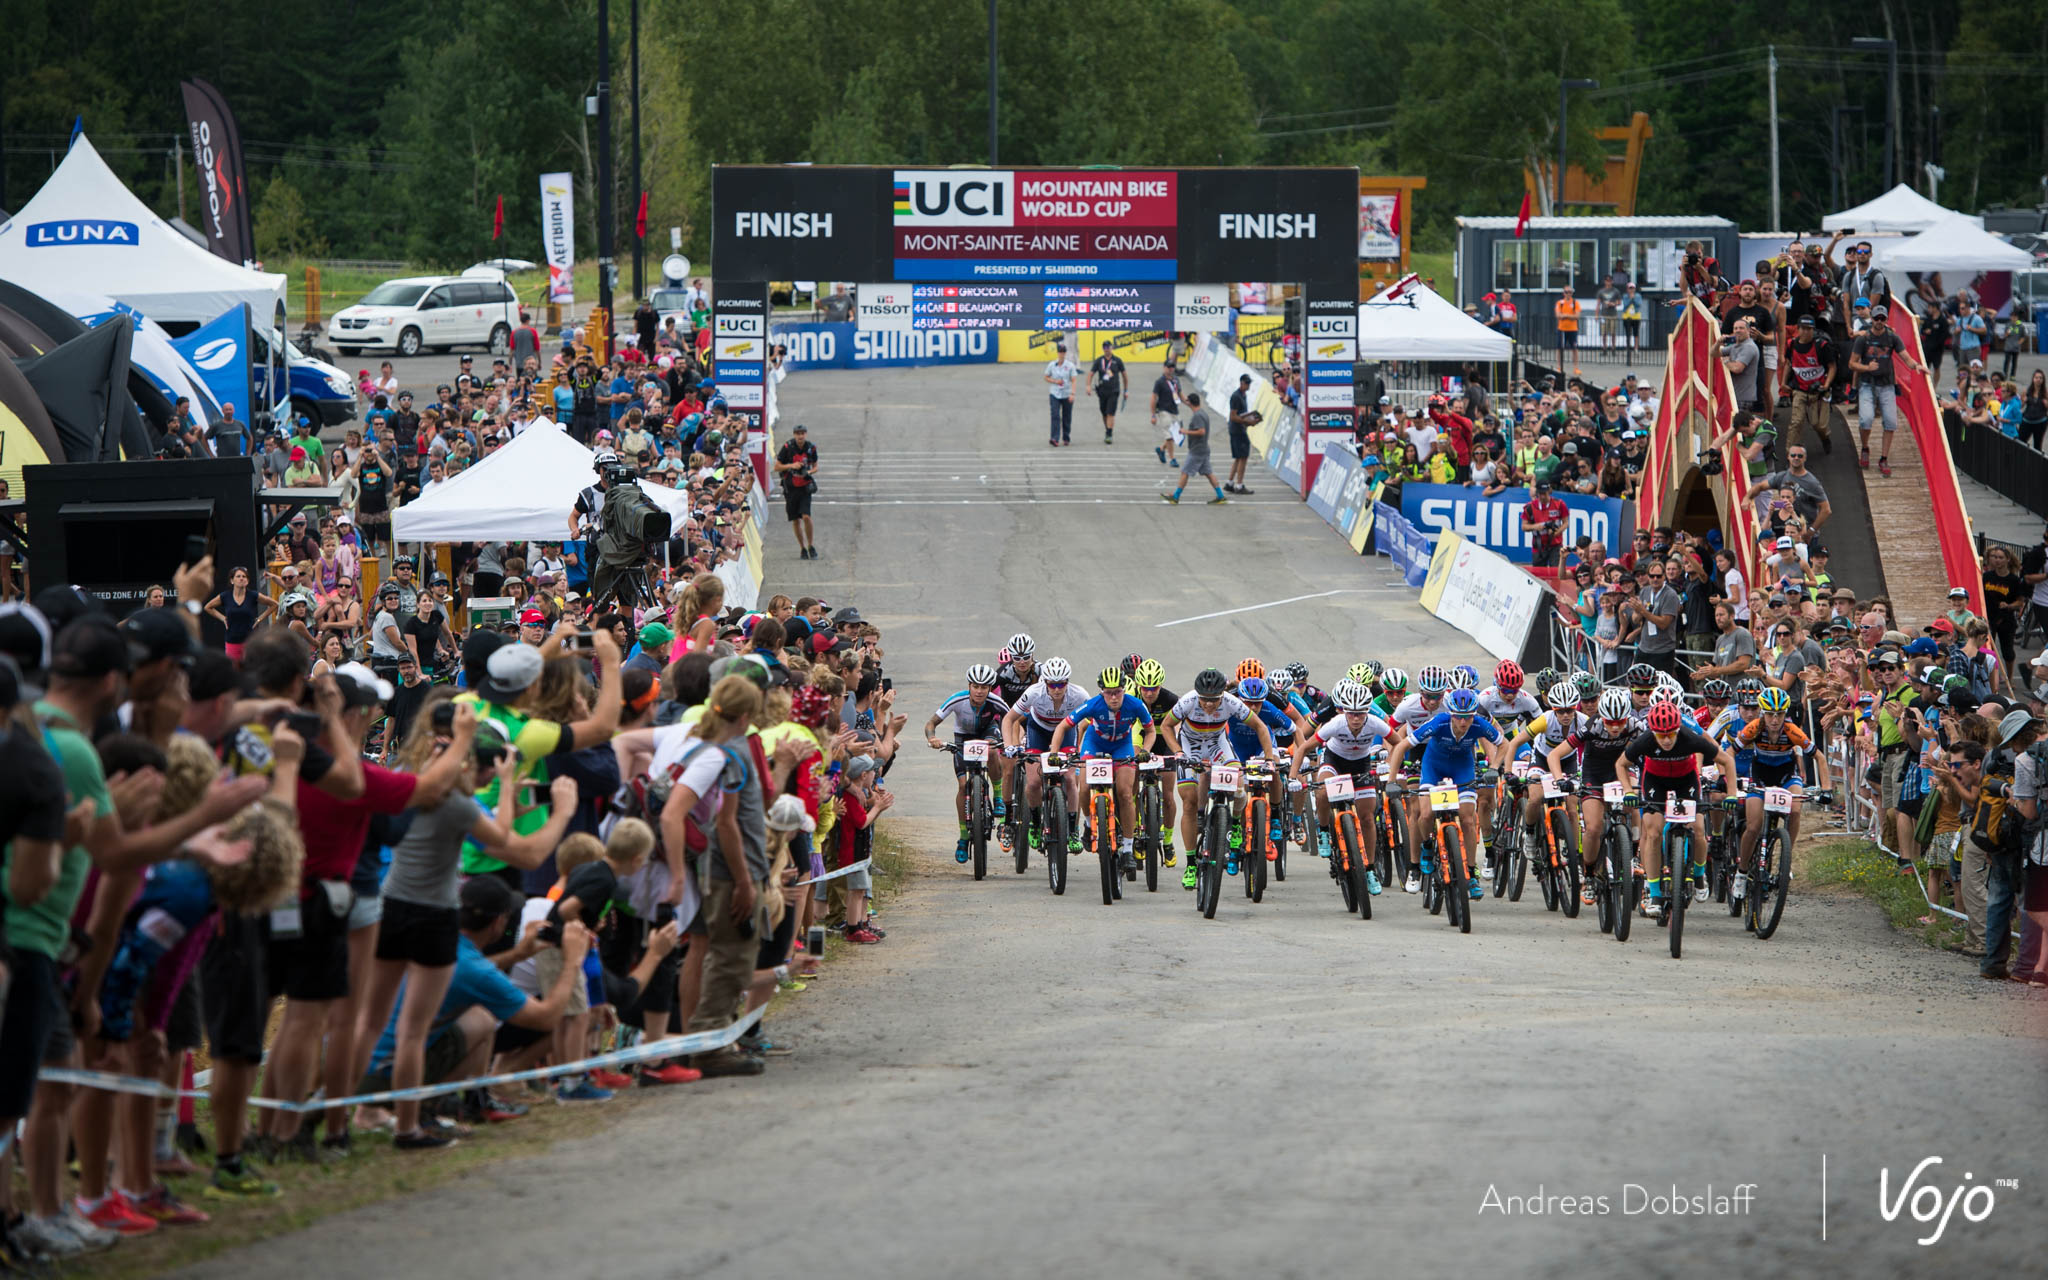 25, Huck, Erin, Scott-3Rocks Racing, , USA 10, Spitz, Sabine, Sabine Spitz Pro Team, , GER 7, Batty, Emily, Trek Factory, , CAN 5, Nash, Katerina, Luna Pro Team, , CZE 1, Langvad, Annika, Specialized Racing XC, , DEN 14, Dahle Flesja, Gunn-Rita, Multivan Merida Biking Team, , NOR 2, Pendrel, Catherine, Luna Pro Team, , CAN 20, Benko, Barbara, Focus XC Team, TV Haiger, HUN 9, Henderson, Rebecca, Trek Factory, , AUS 19, Zakelj, Tanja, Unior Tools, , SLO 11, Grobert, Helen, Ghost Factory Racing Team, RSV Trompeter Bad Säckingen, GER 15, Belomoyna, Yana, CST Superior Brentjens, , UKR 13, Davison, Lea, Specialized Racing, , USA